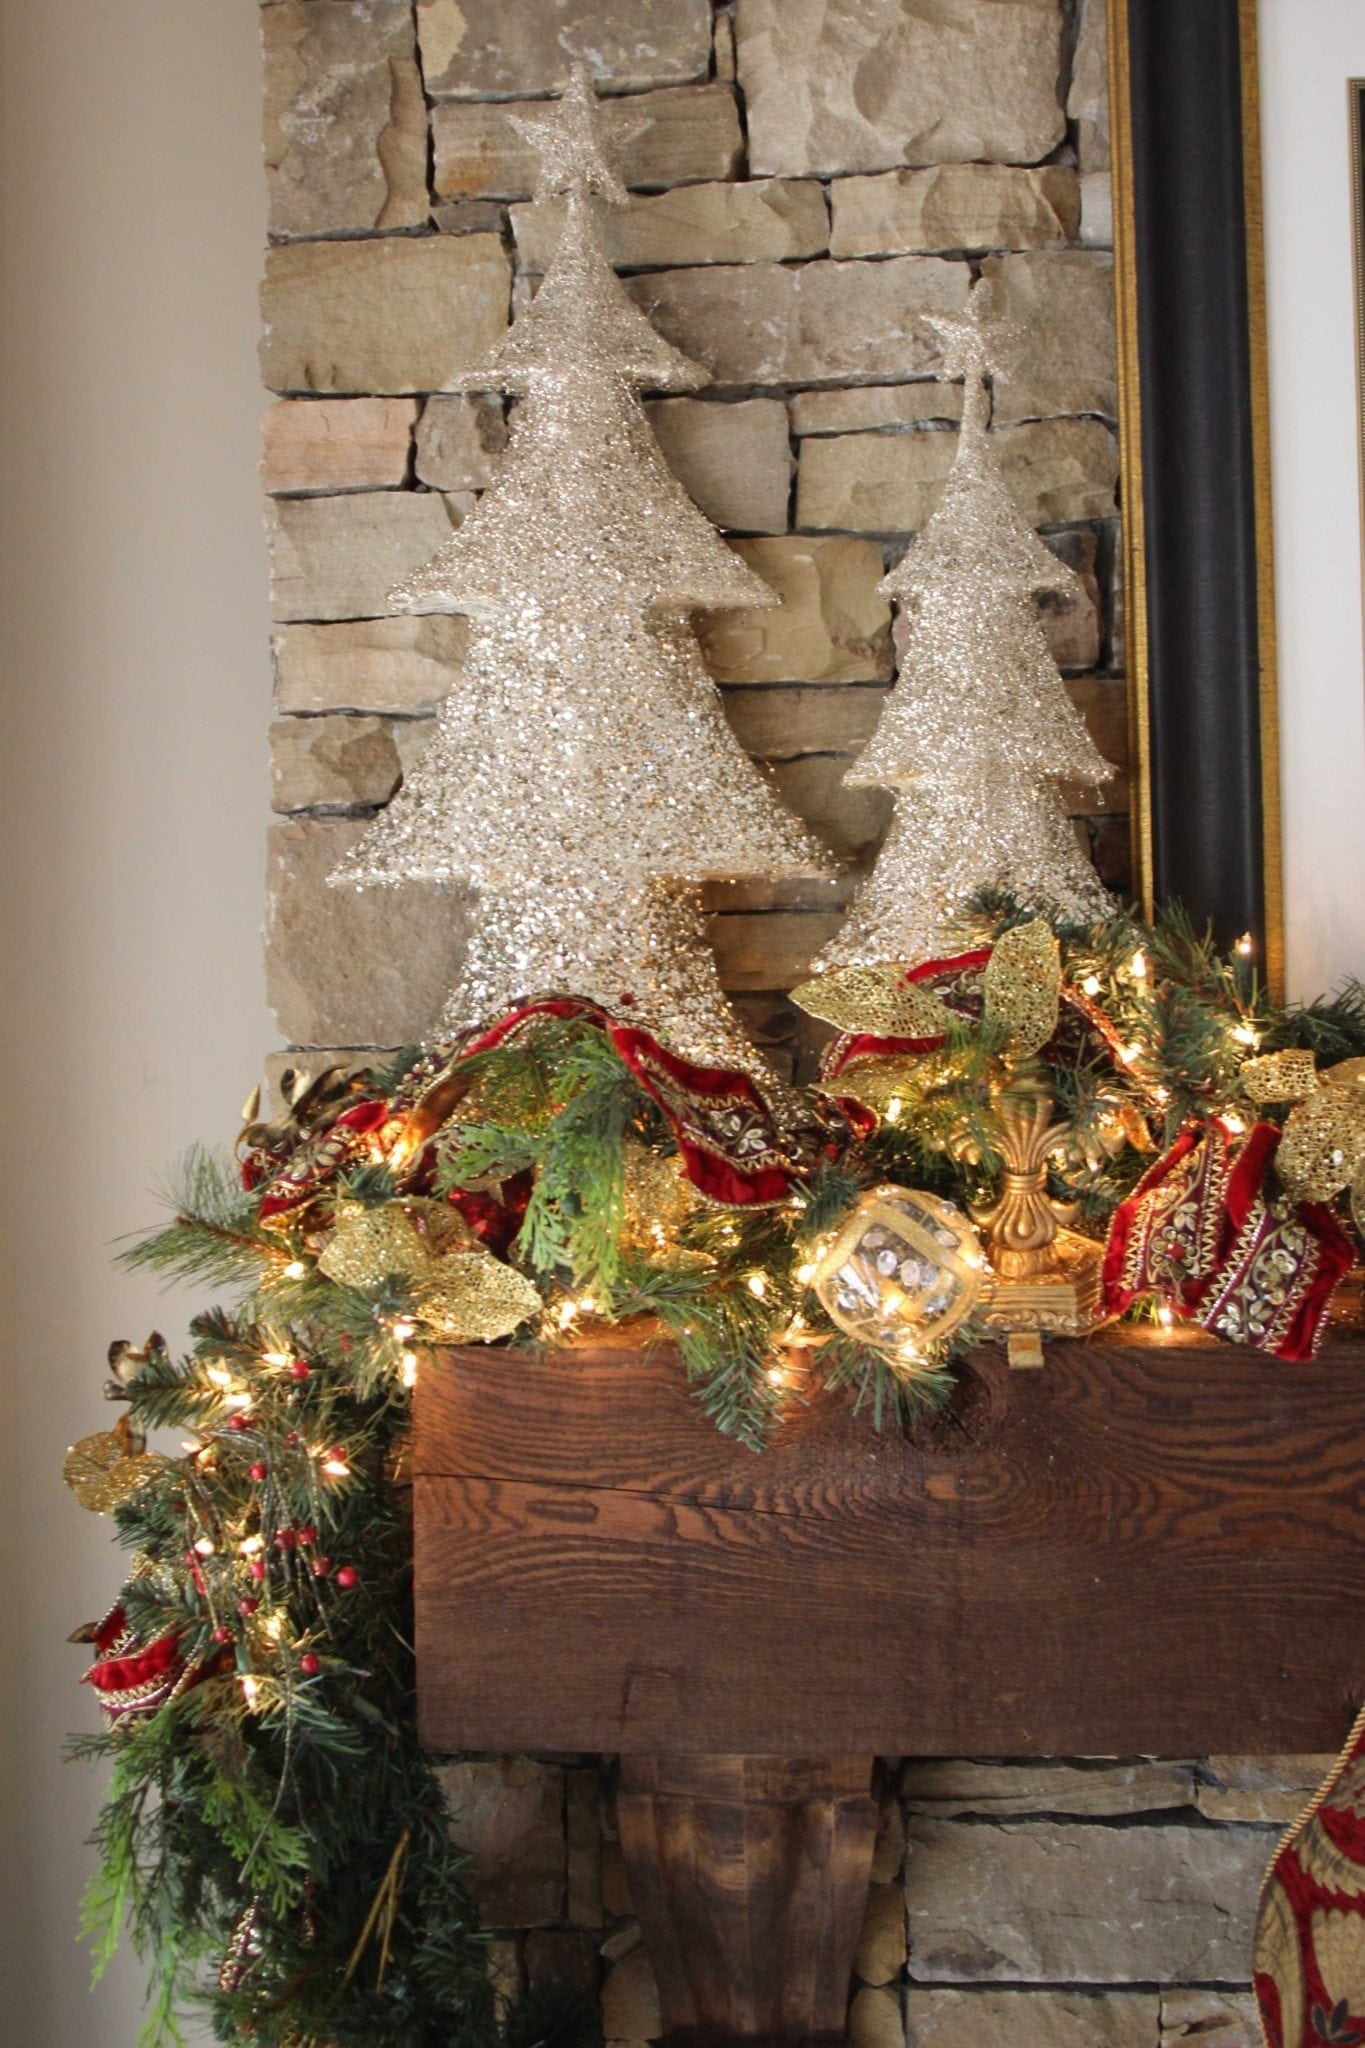 Holiday home decor. How to decorate a fireplace mantel for Christmas.